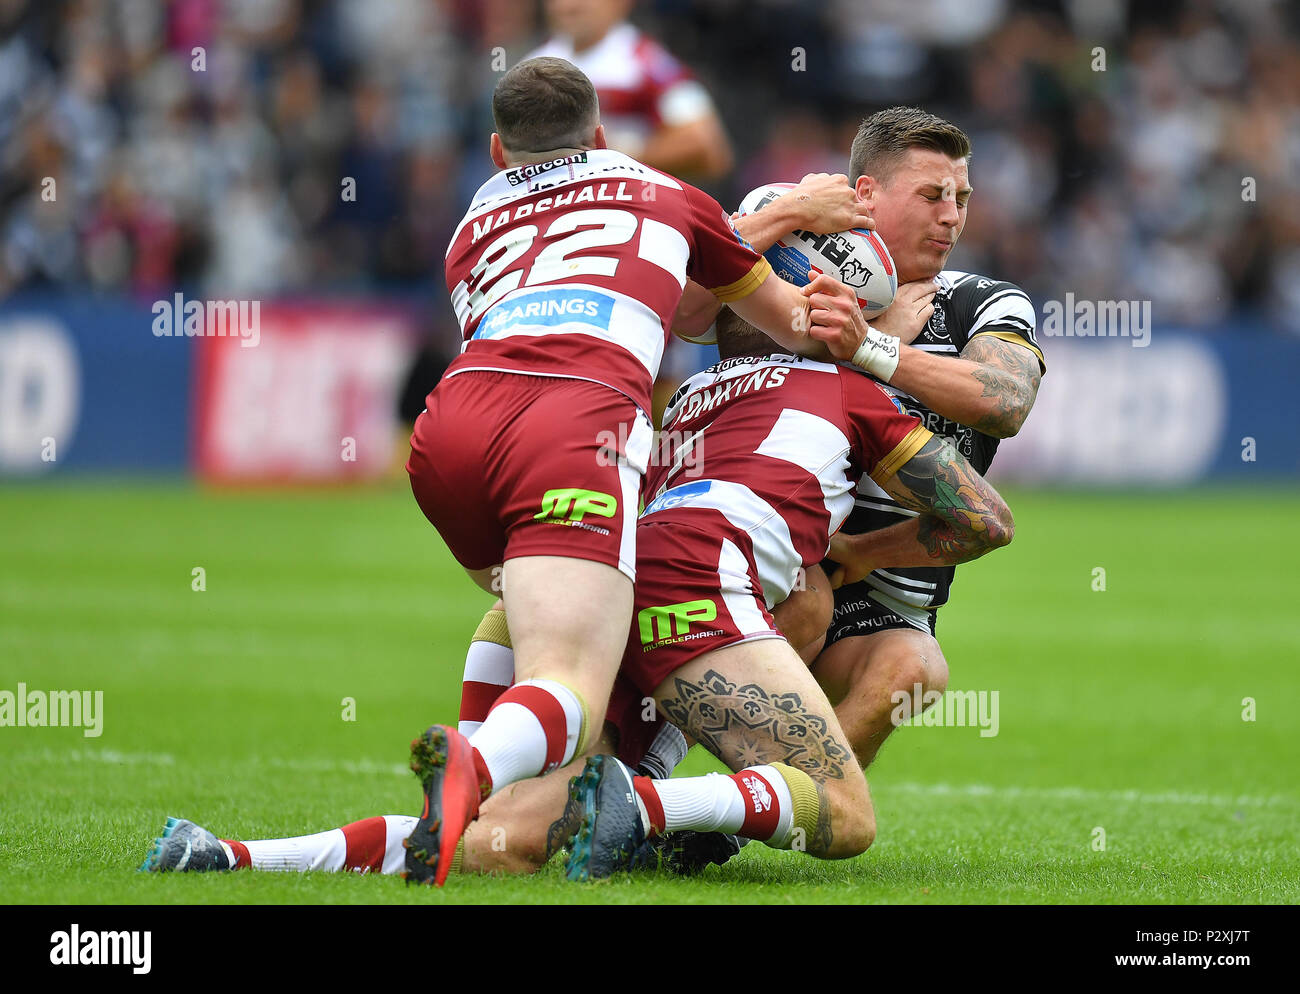 Hull FC's Jamie Shaul is tackled by Wigan Warriors' Sam Tomkins and Liam Marshall during the Betfred Super League match at the KCOM Stadium, Hull. - Stock Image